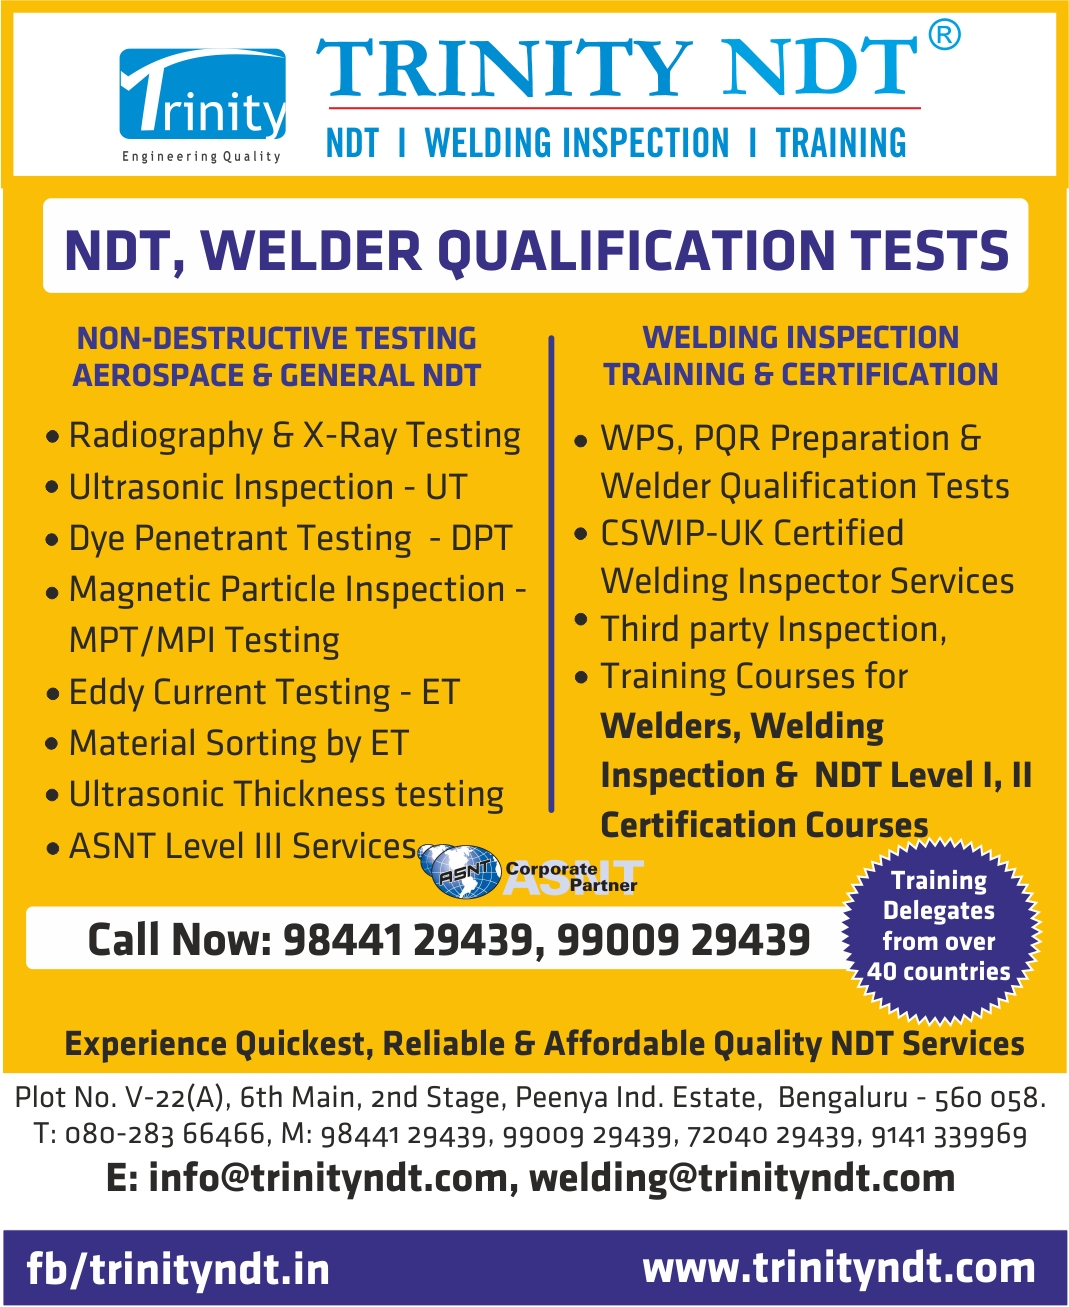 Trinity NDT Quality Services - Glance